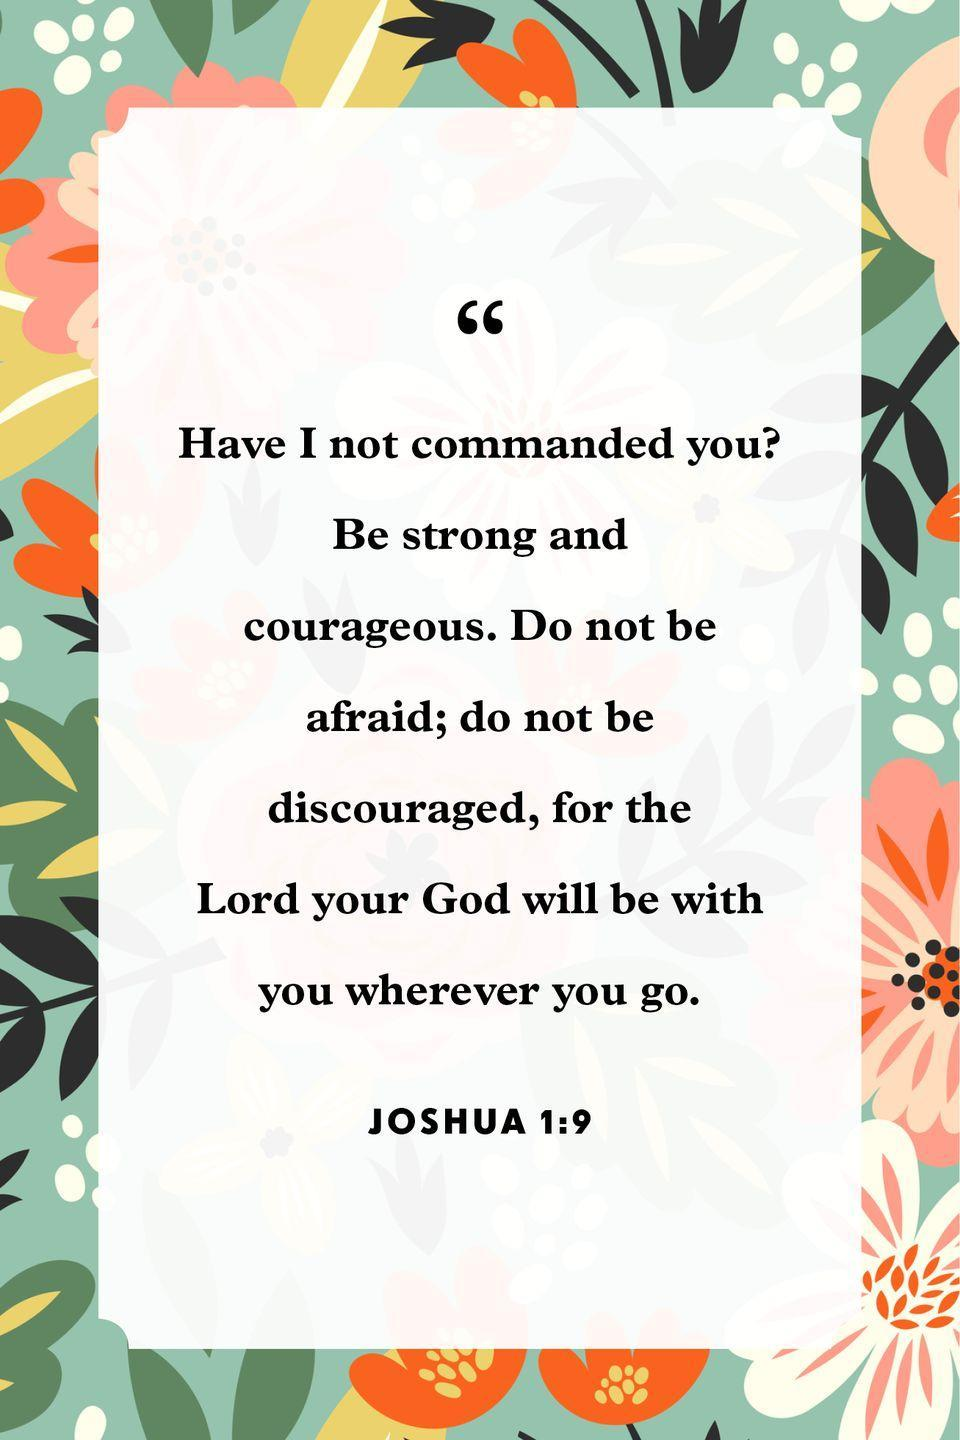 "<p>""Have I not commanded you? Be strong and courageous. Do not be afraid; do not be discouraged, for the Lord your God will be with you wherever you go.""</p>"